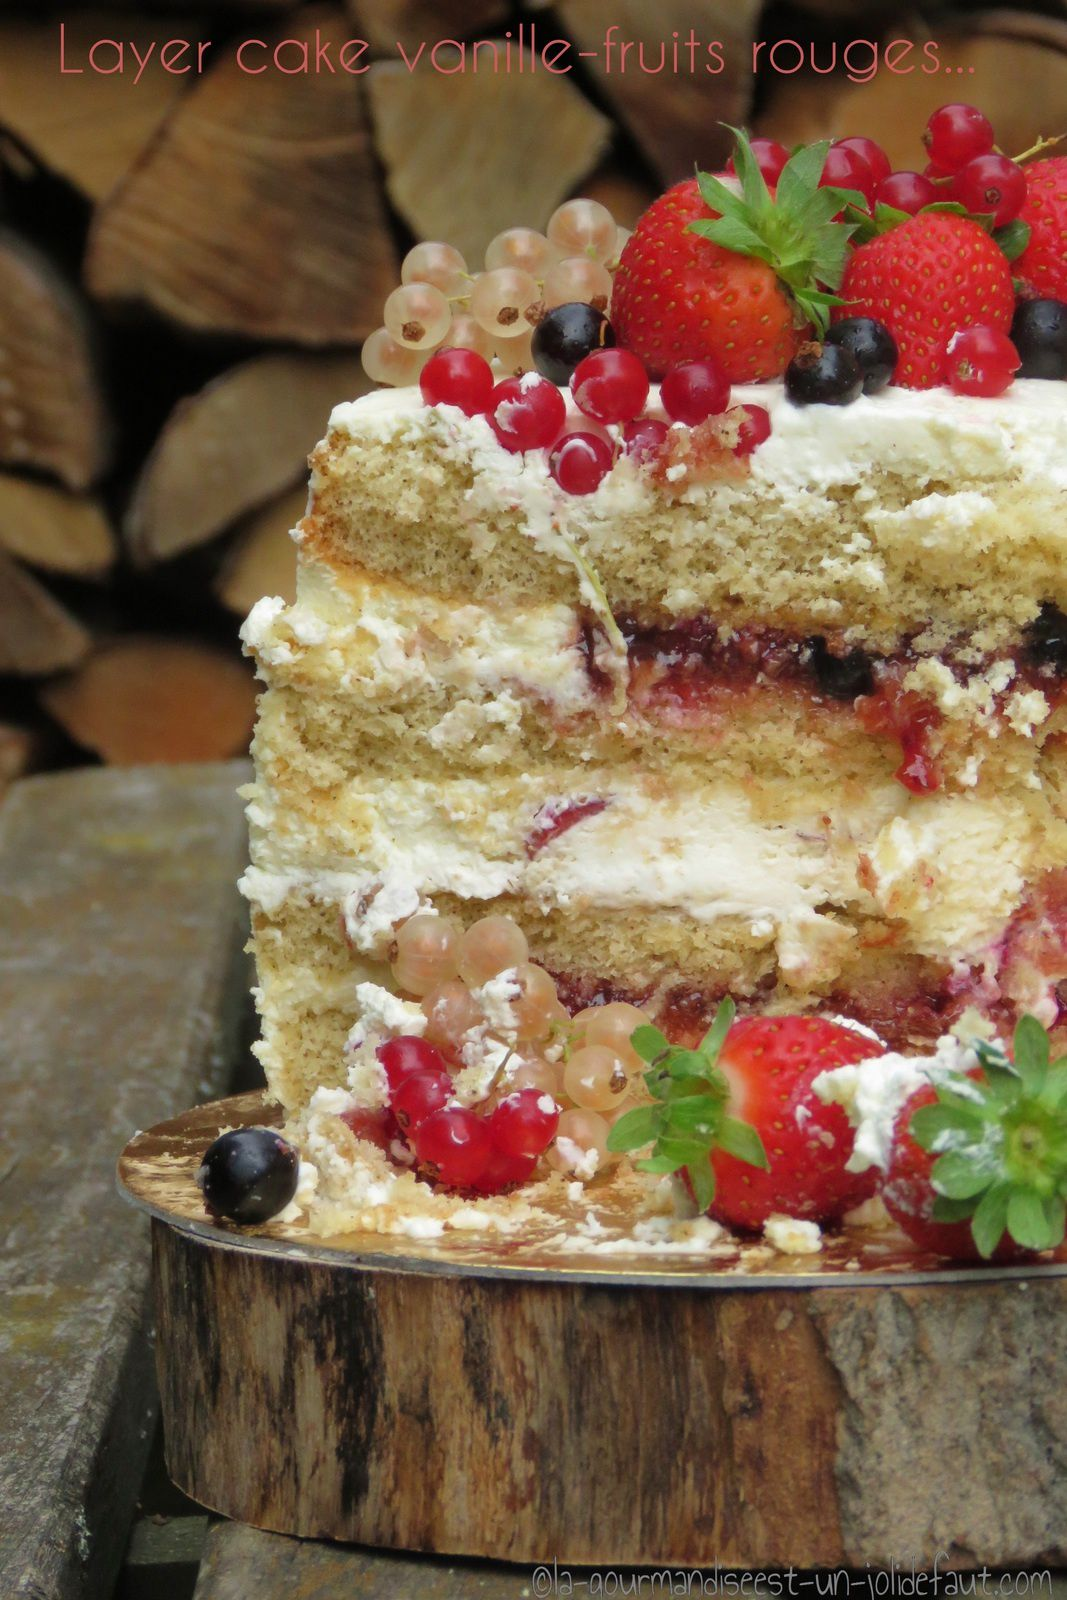 Layer cake vanille-fruits rouges